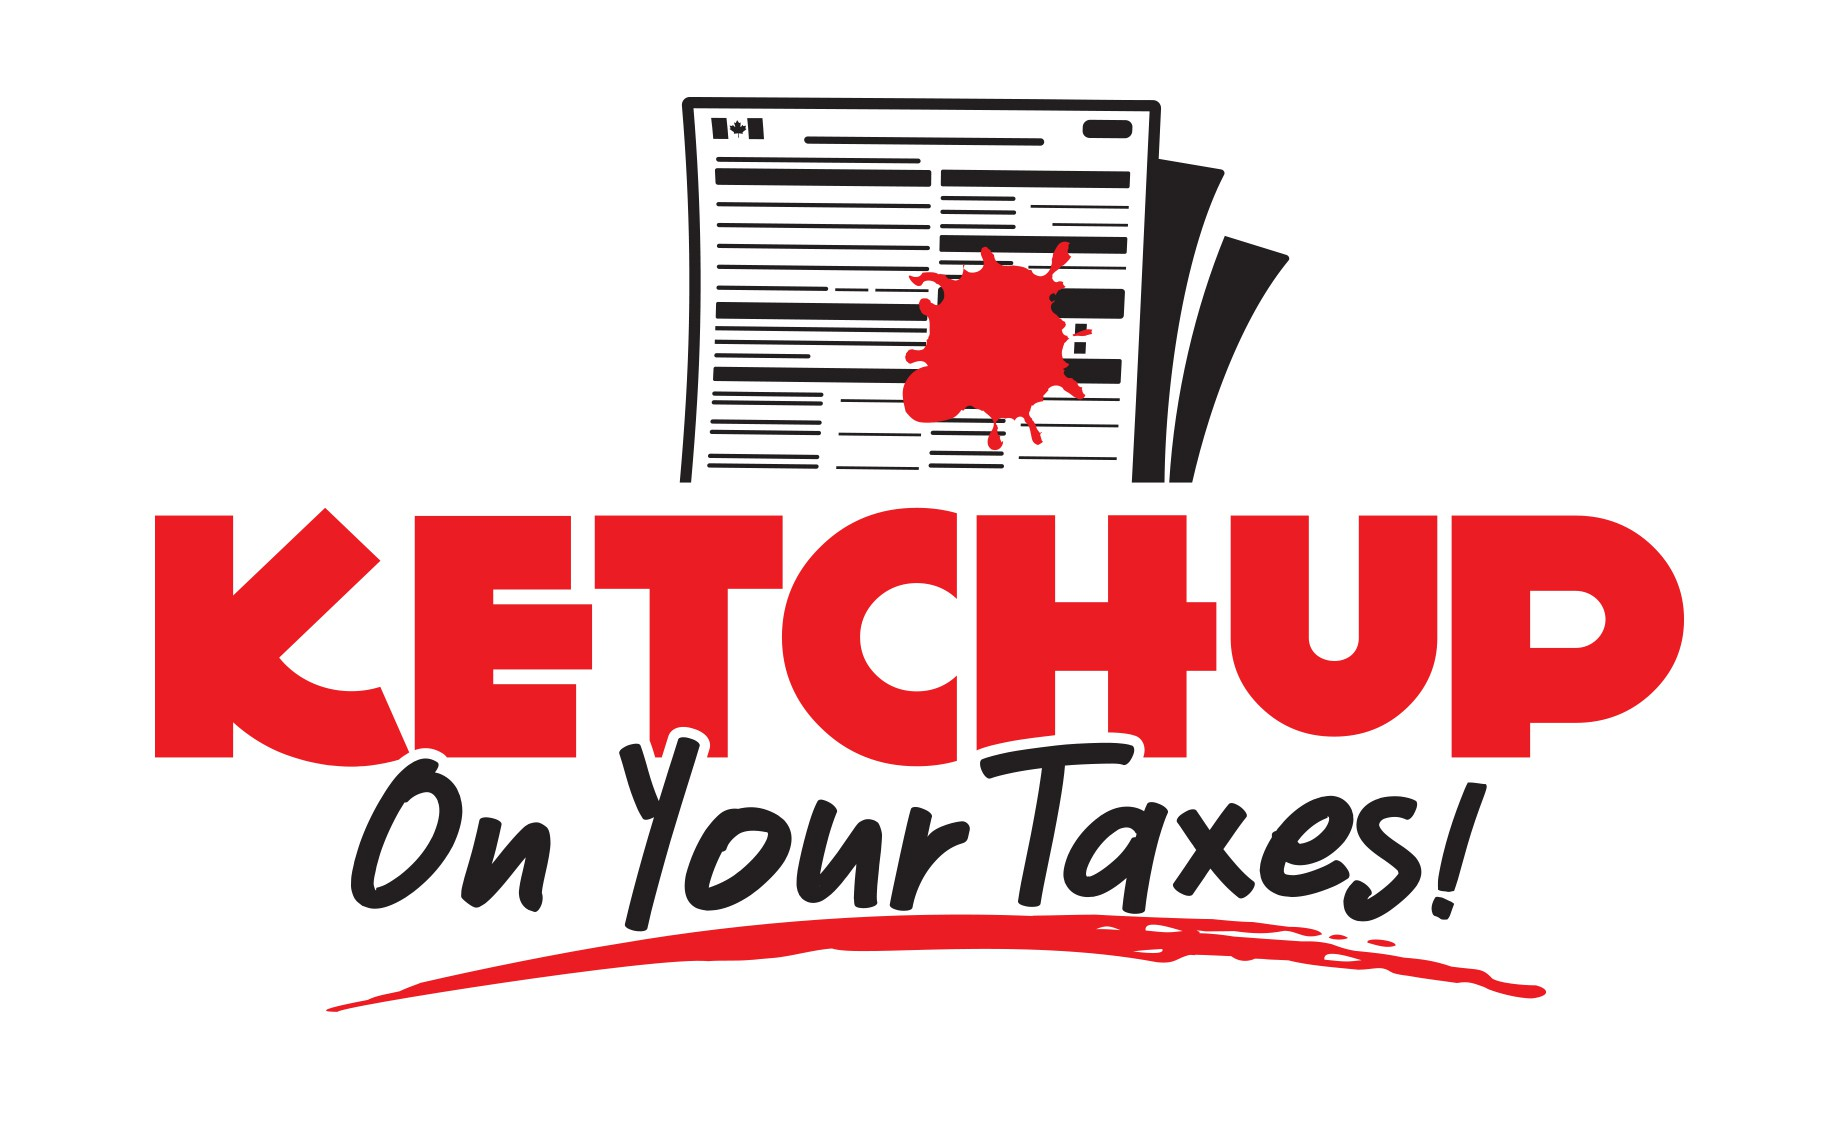 A playful, simple logo & graphic for a taxes slogan!